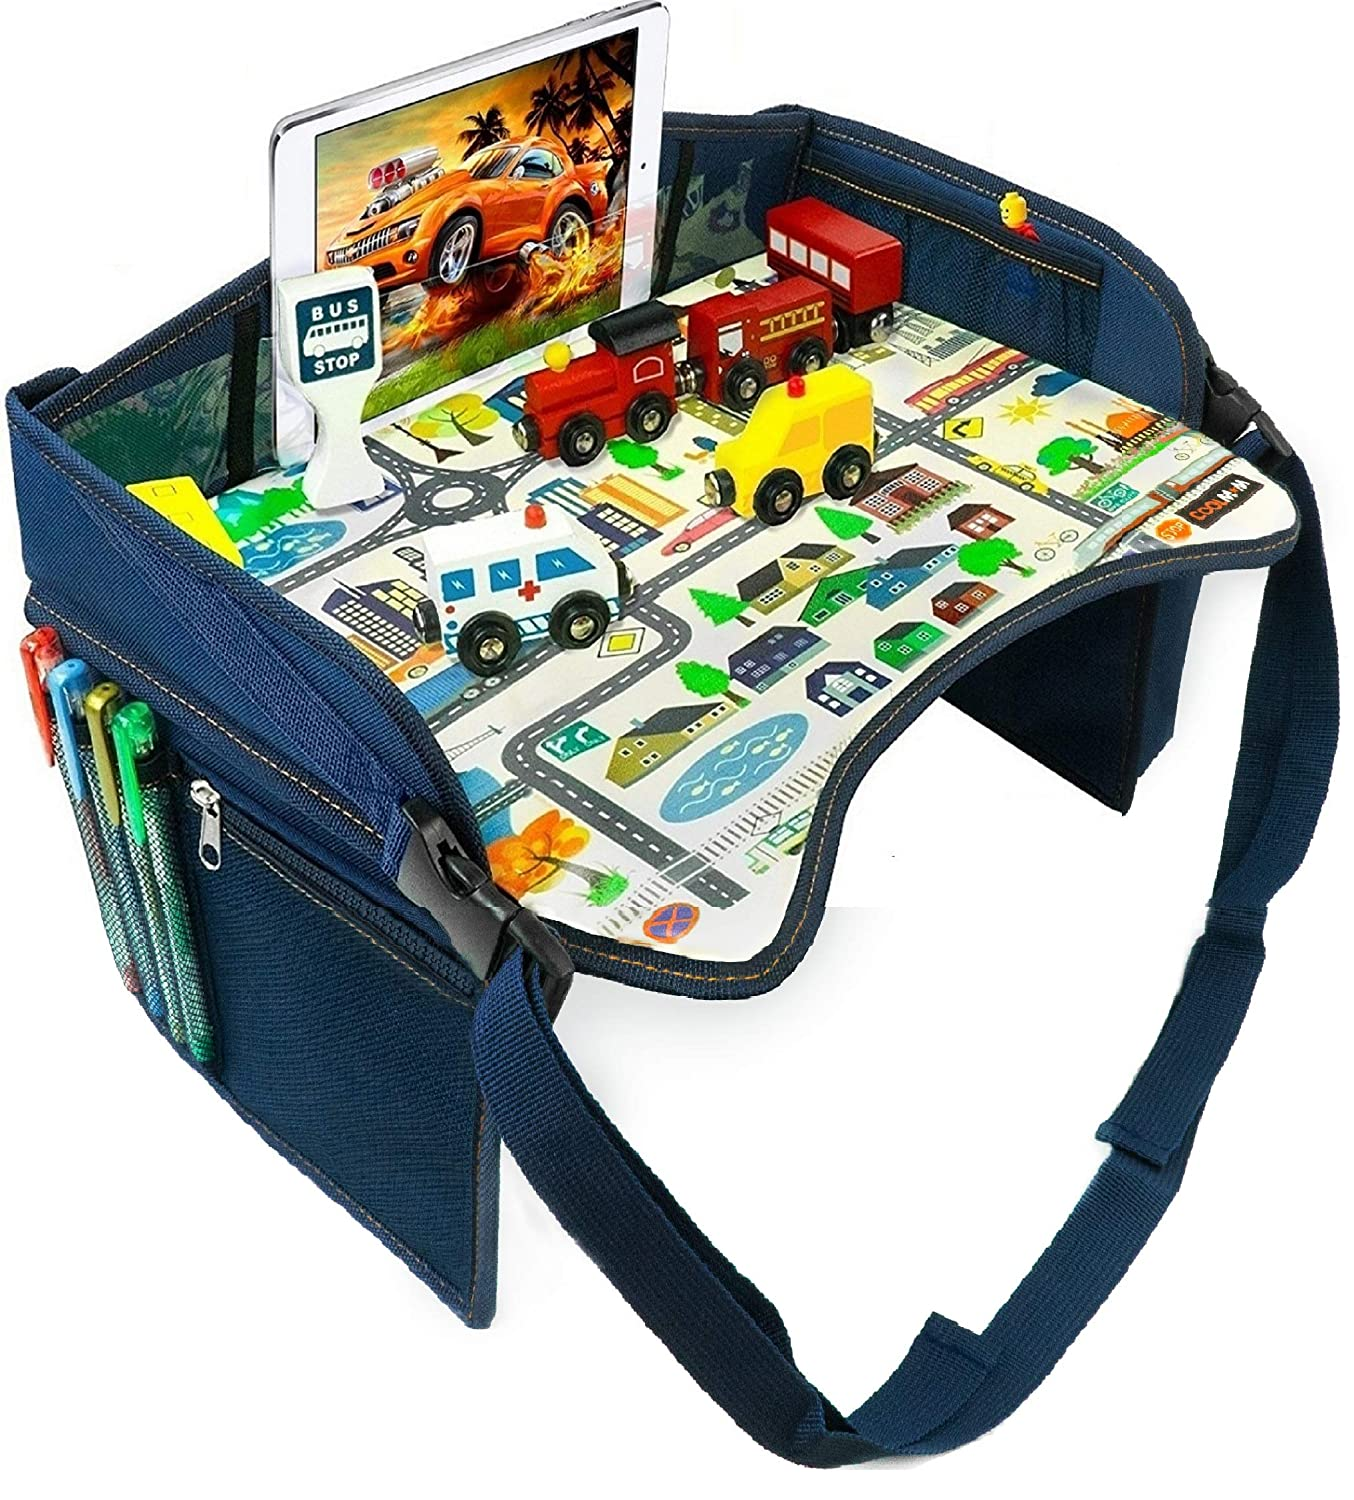 Road Trip Essential Lap Desk for Carseat Airplane Kids Travel Activity /& Snack Tray by On The Go Families Blue Booster Child /& Toddler Car Seat Tray Waterproof /& Machine Washable Stroller